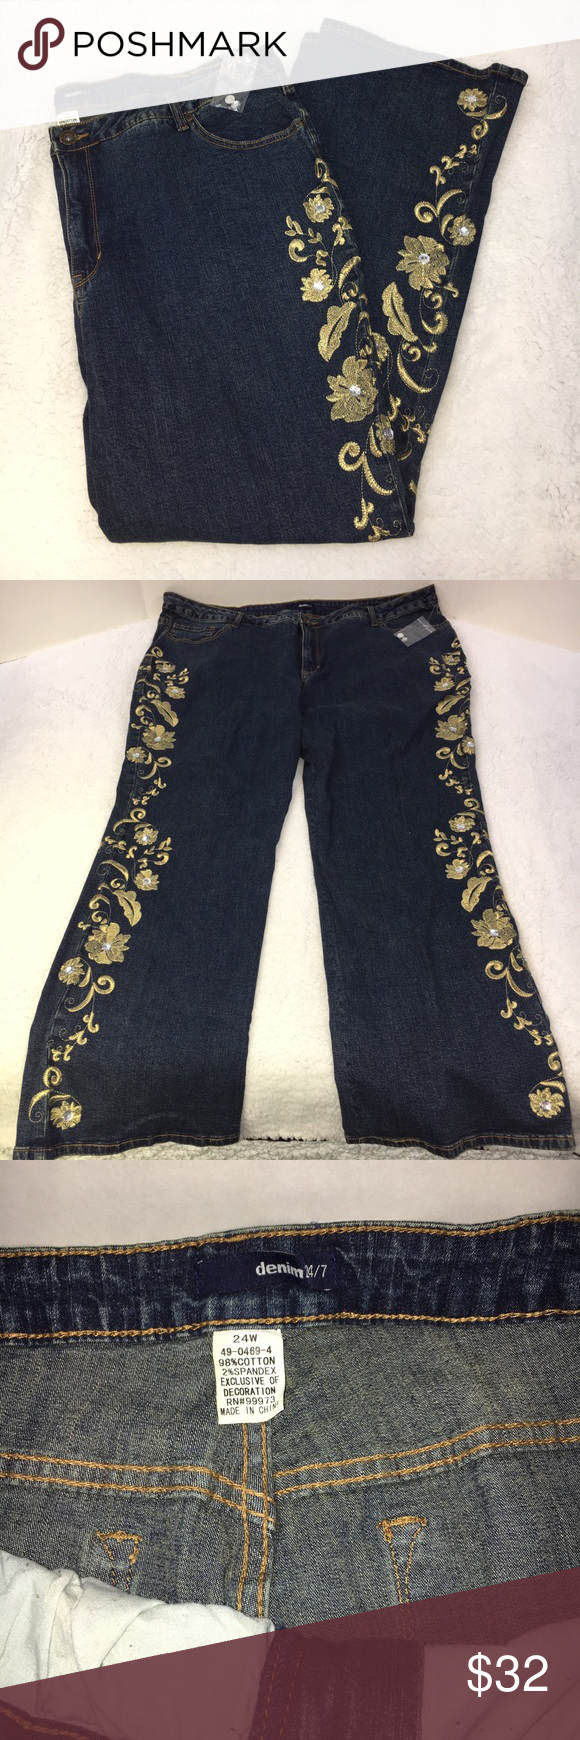 Denim 24/7 gold floral stitched flare wide jeans Denim 24/7 gold floral stitched rhinestone flare wide leg jeans. Size 24W. Beautiful gold floral stitching down outside of both legs. Clear rhinestones in center of each gold flower. Includes two extra rhinestones. New without tags. 98% cotton, 2% spandex, does have stretch to the fabric. Measures approximately 22 inch waist, 13 inch rise, 29 1/2 inch inseam, 41 inch length, 10 1/2 inch width cuff. Smoke-free home. (A25) denim 24/7 Jeans Flare…